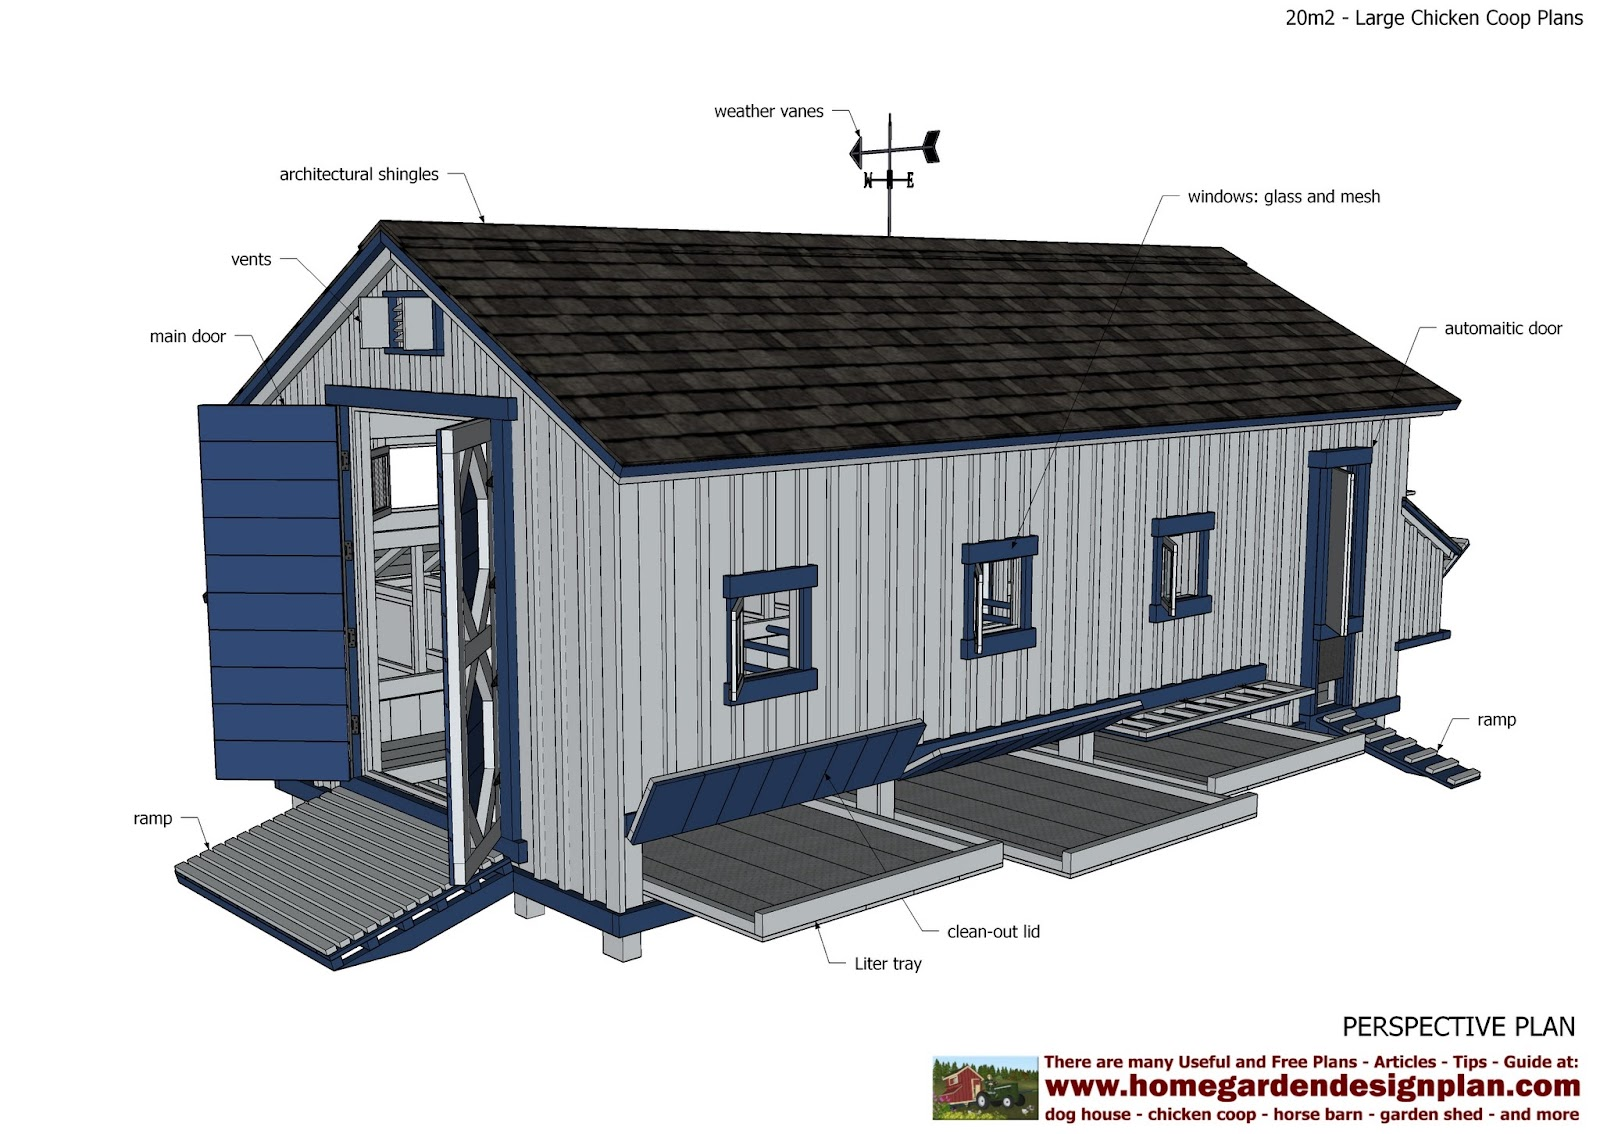 Home garden plans l310 large chicken coop plans for Plans chicken coop